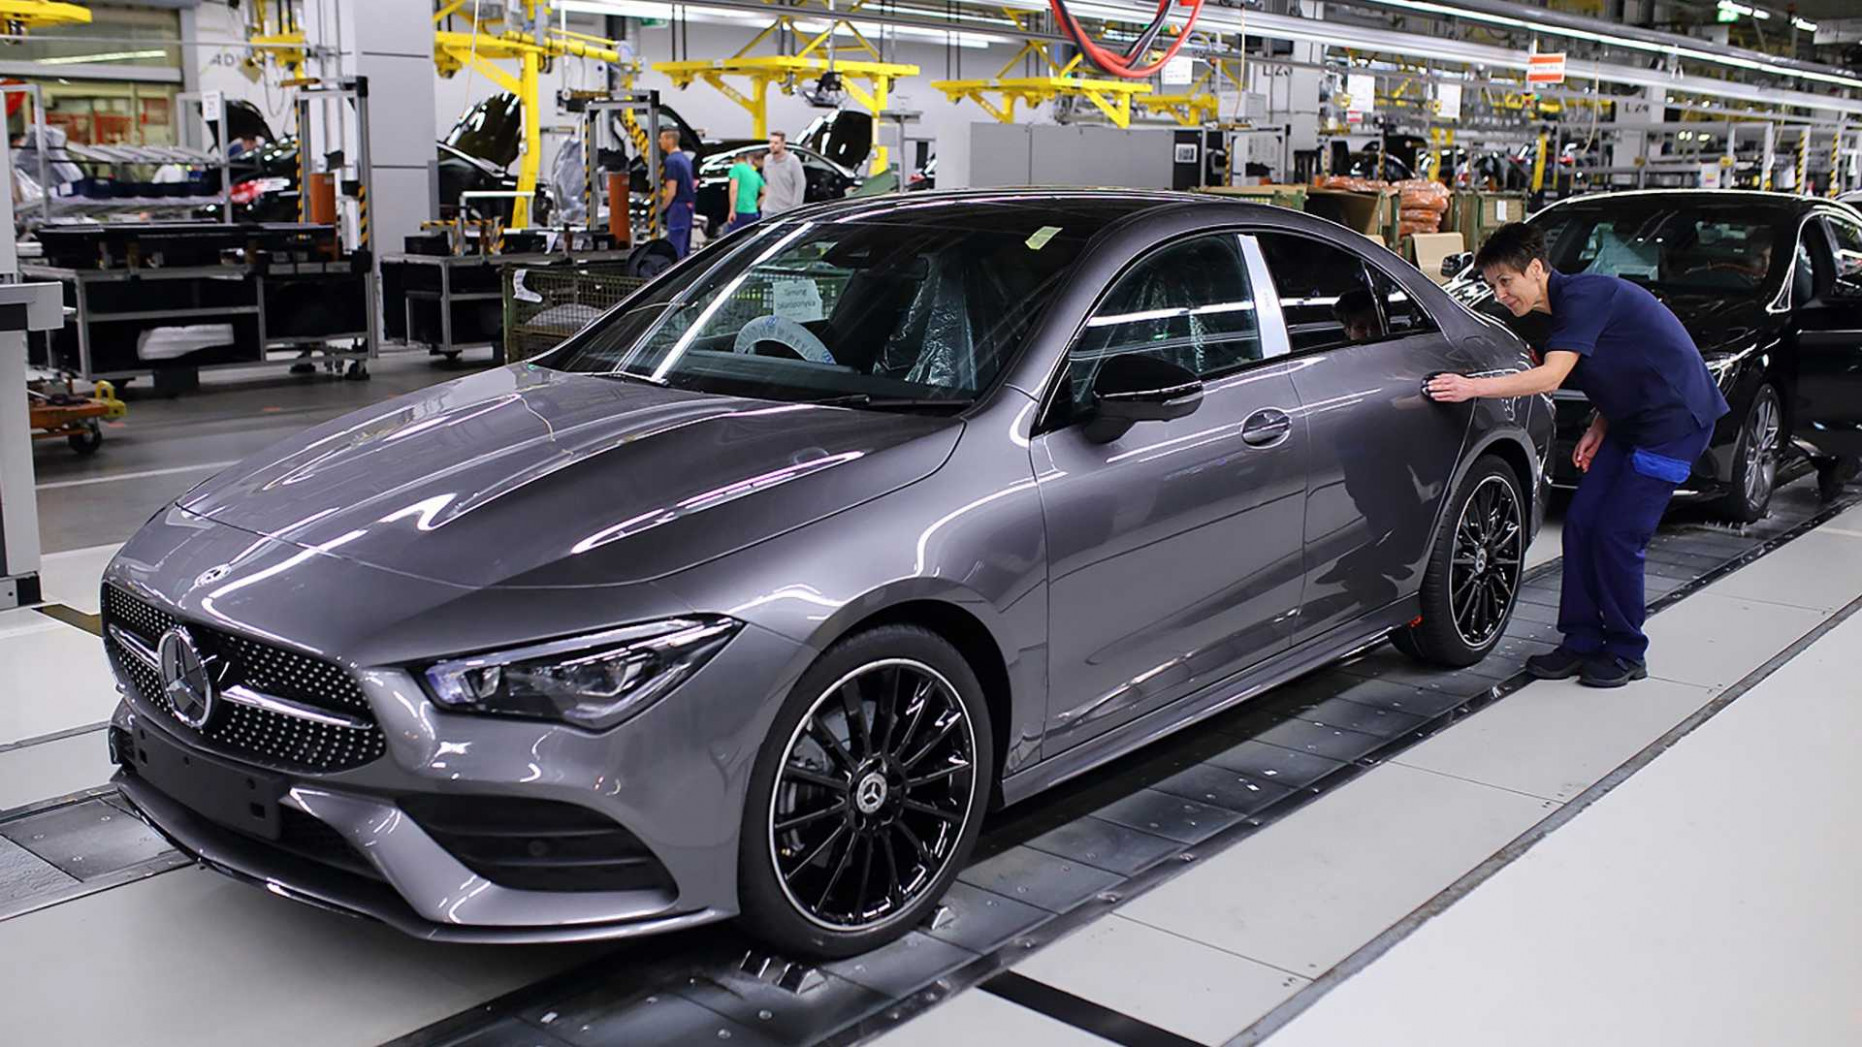 9 Mercedes-Benz CLA-Class production starts in Hungary - mercedes cla 2020 price